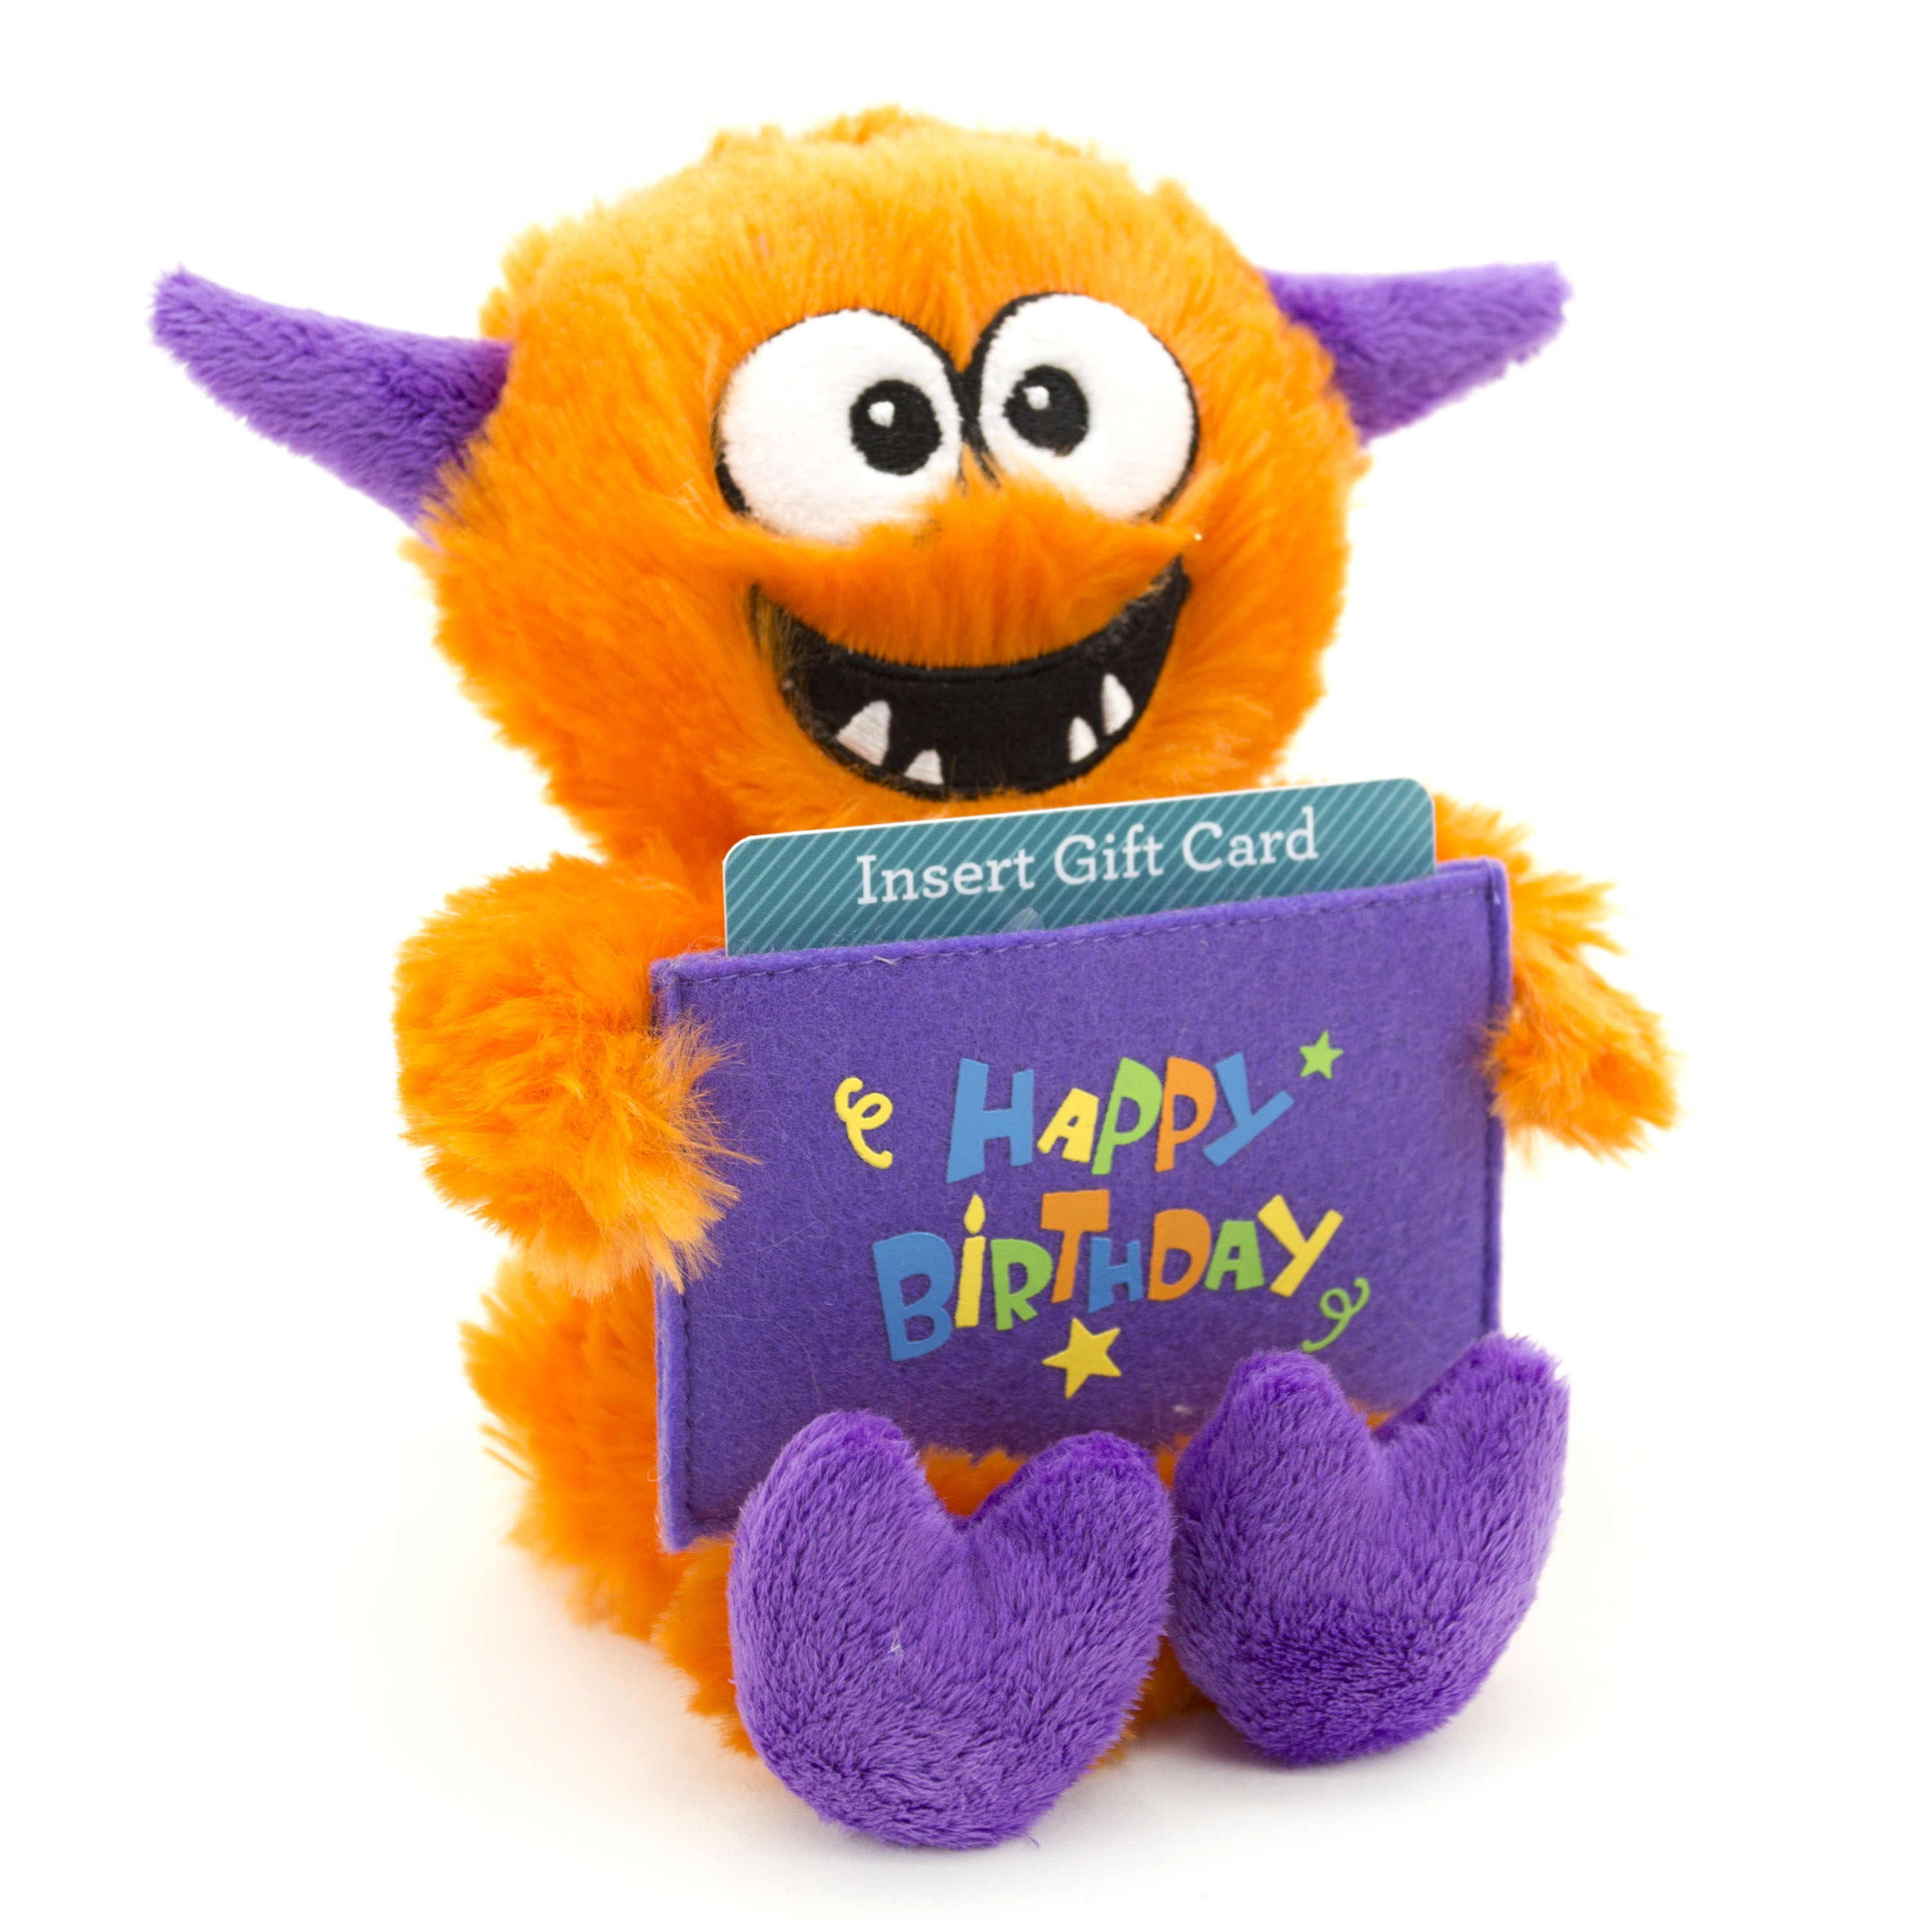 8-inch  Celebration Musical Plush Toy - Orange Monster